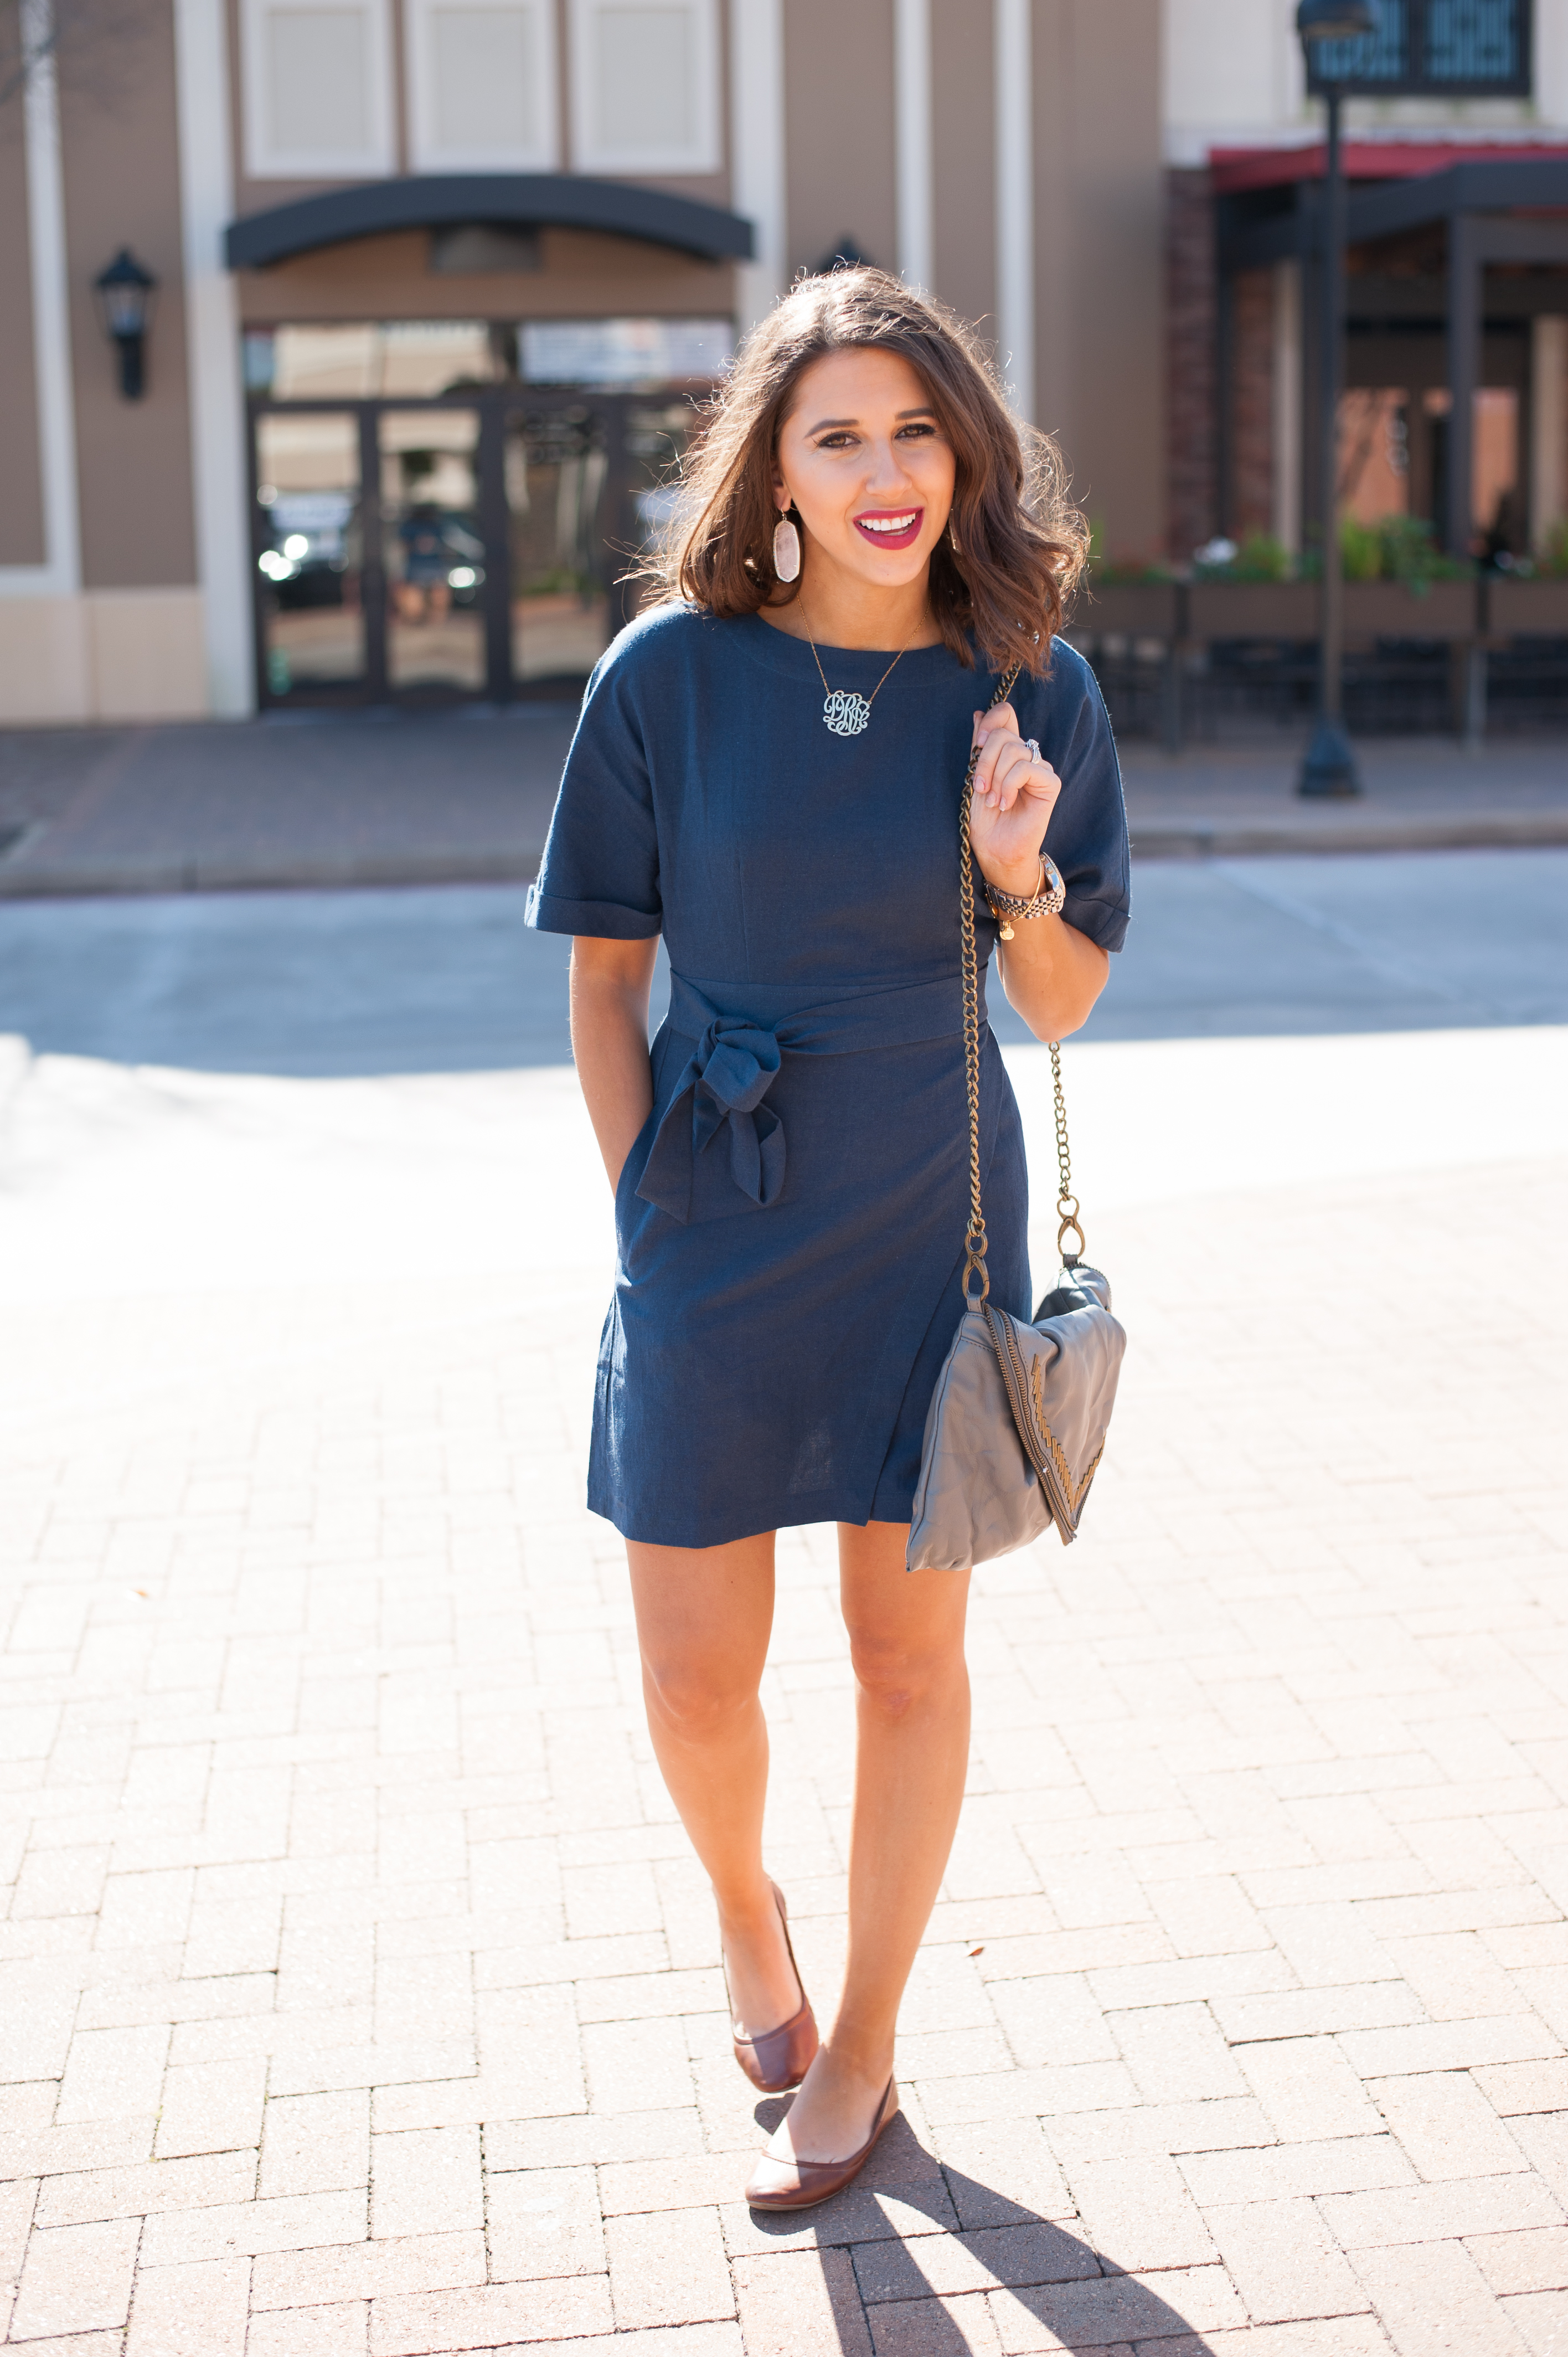 dress_up_buttercup_dede_raad_fashion_blogger_houston (6 of 15)